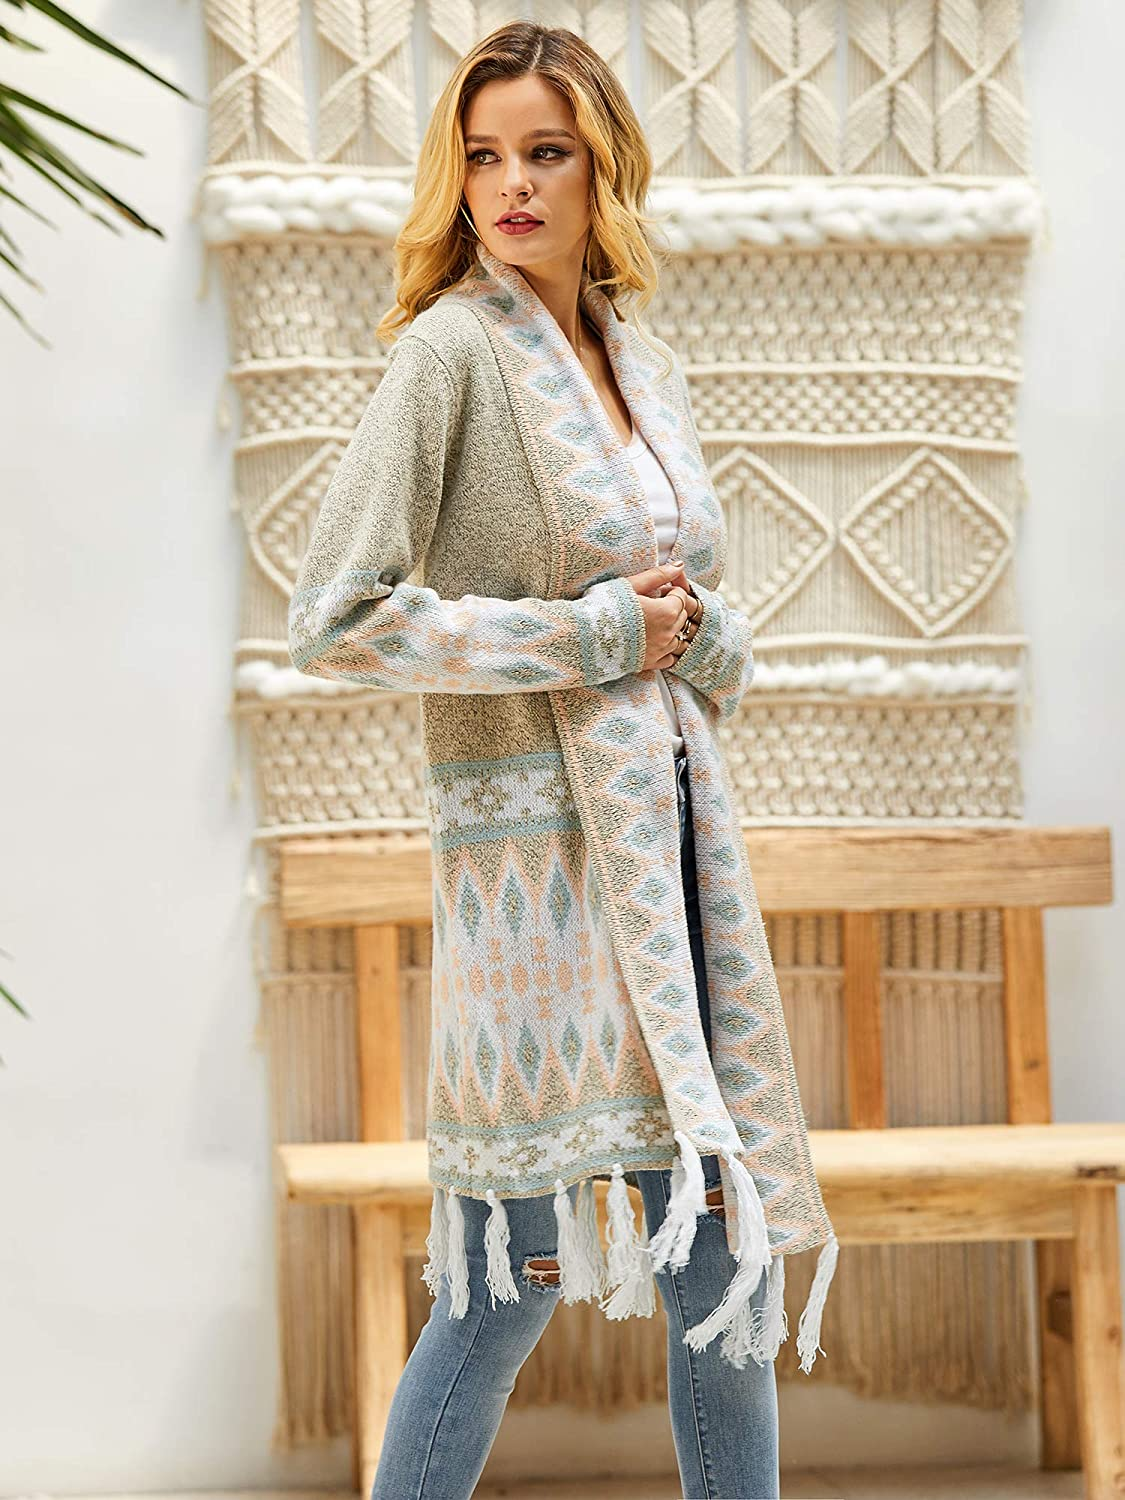 1920s Style Blouses, Shirts, Sweaters, Cardigans Misassy Womens Boho Open Front Long Cardigans Sweater Loose Long Sleeve Aztec Embroidery Tassels Kimono Duster Outwear $37.88 AT vintagedancer.com